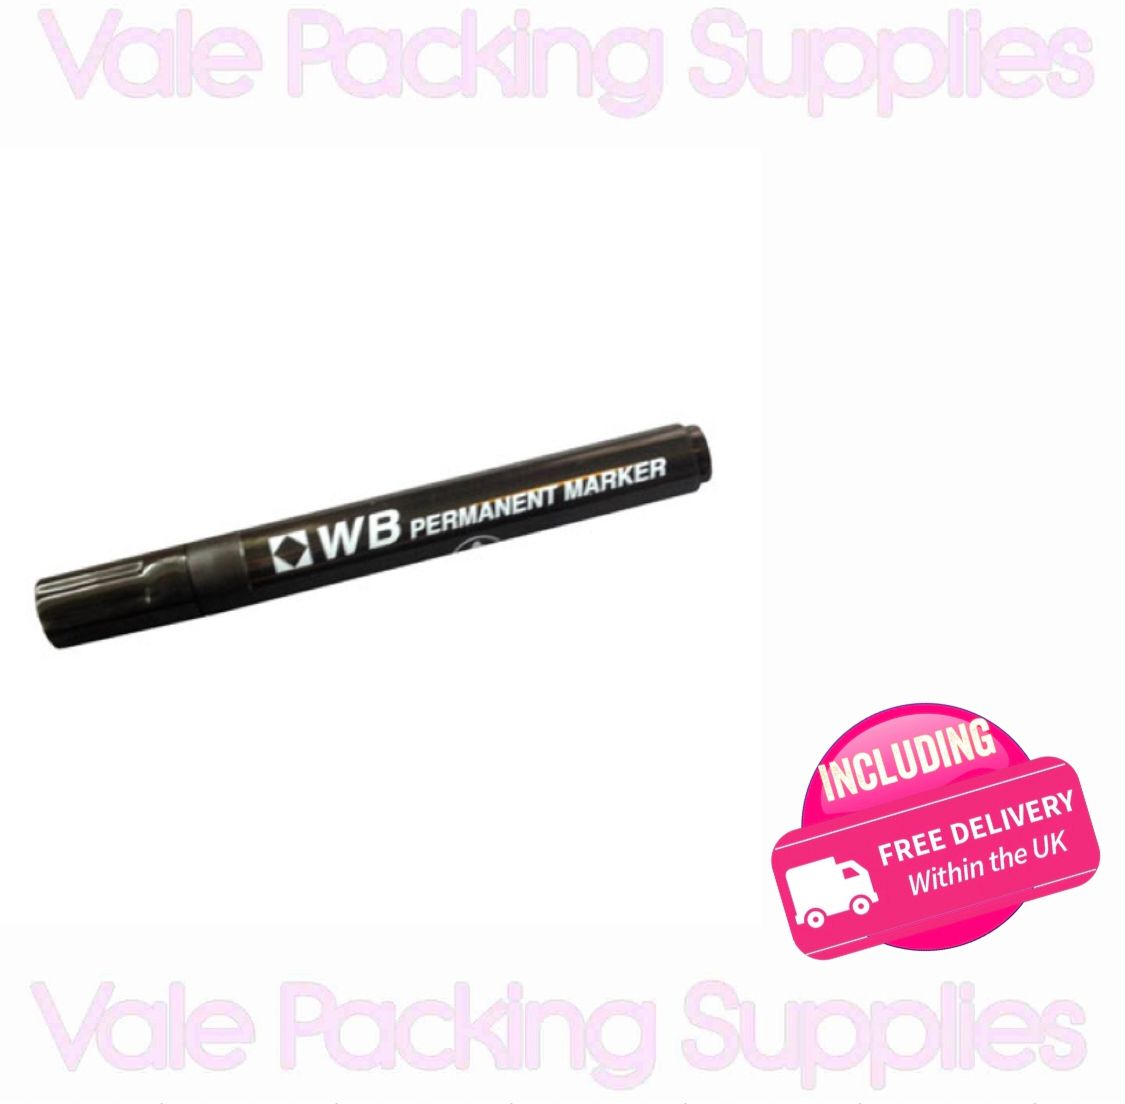 black WB permanent marker pen on a white background with pink vale packing supplies logos and pink delivery sign